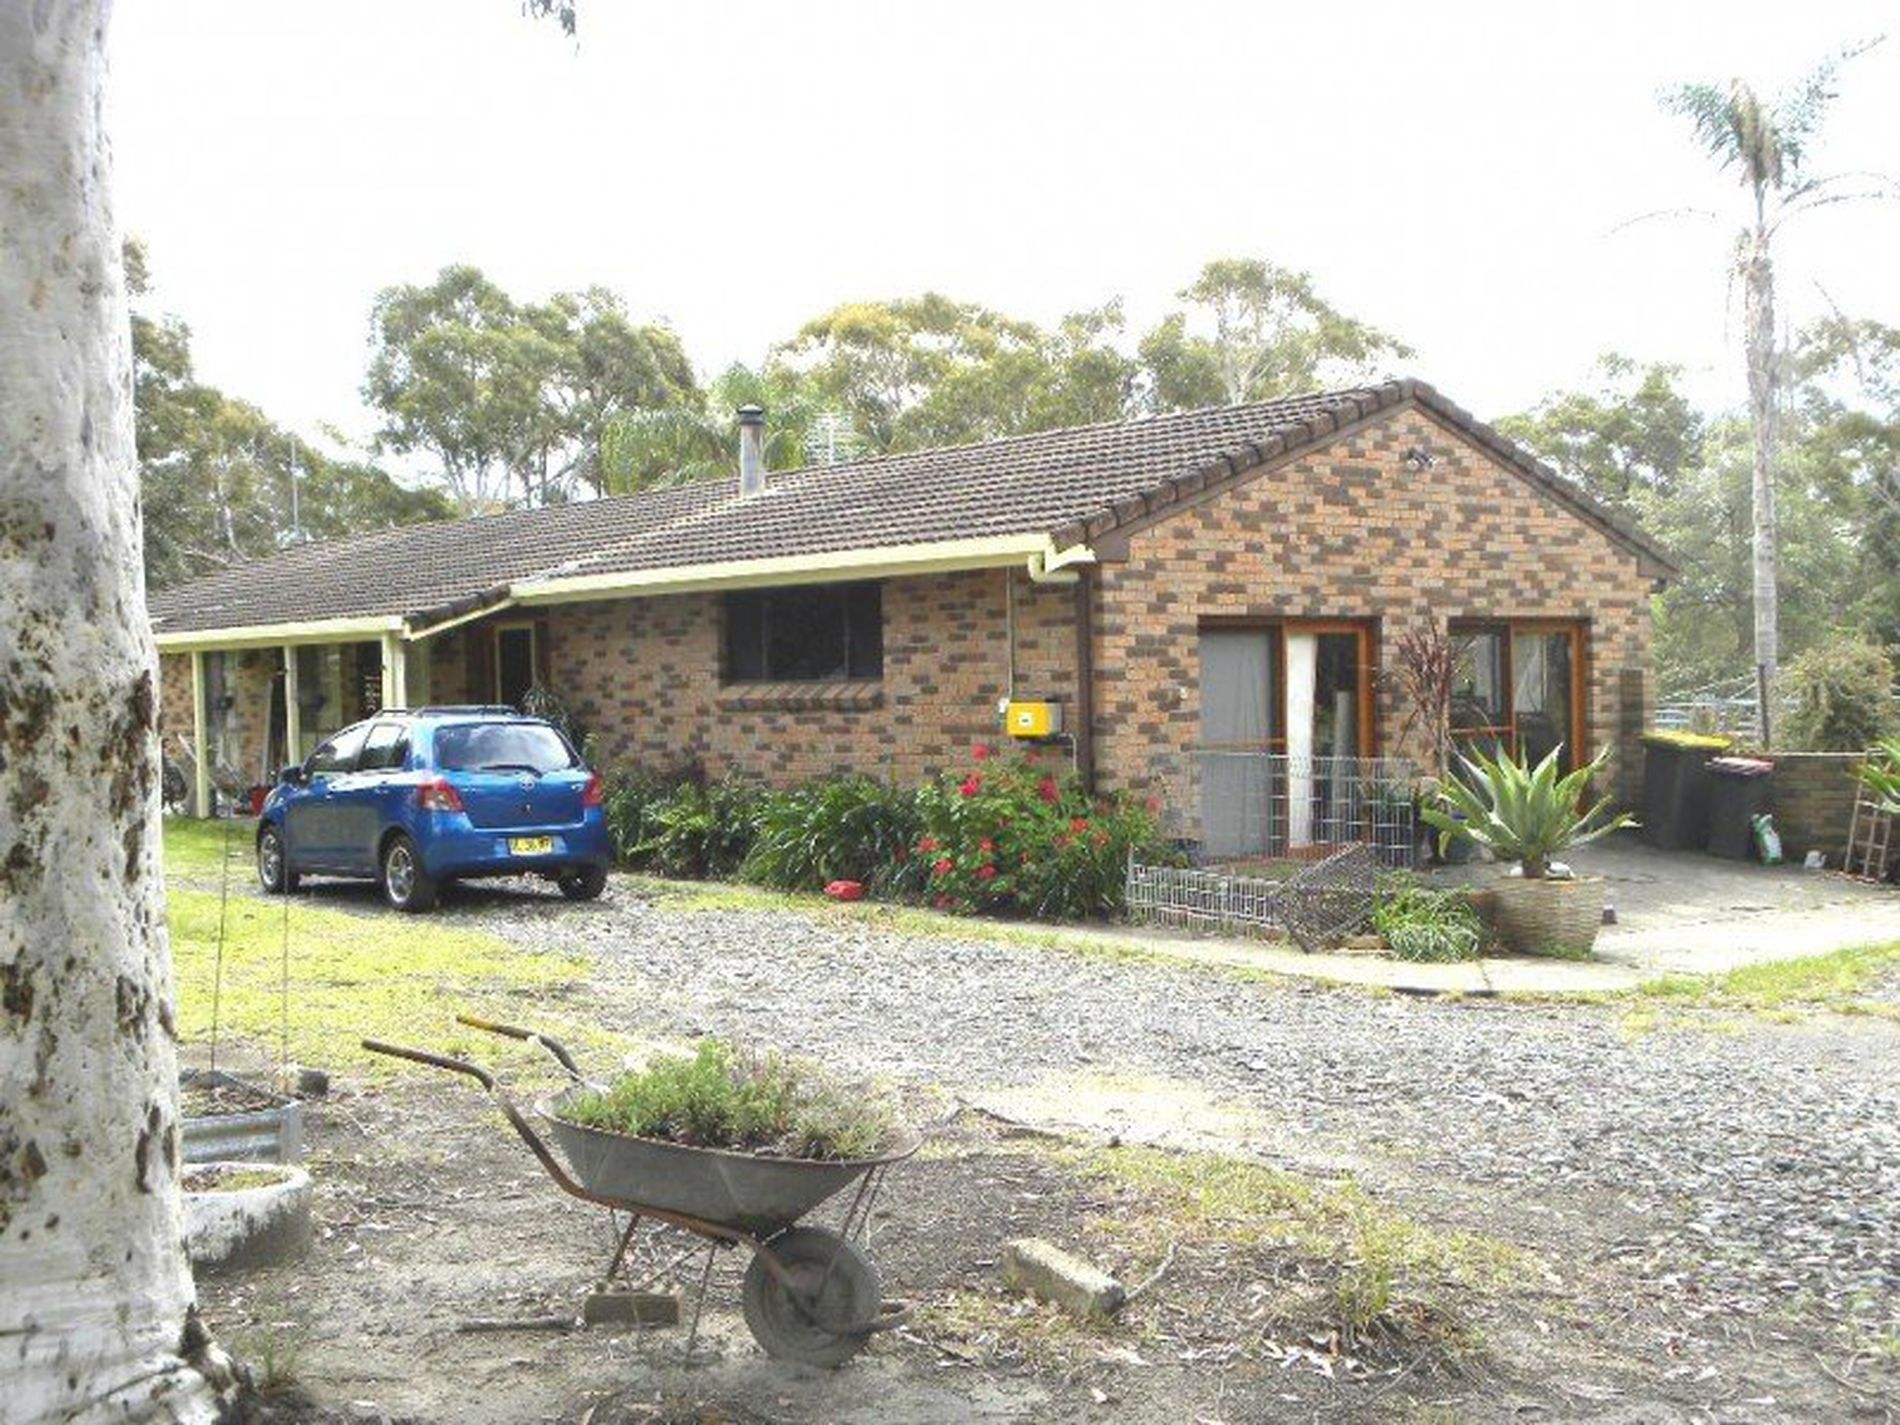 597 Sussex Inlet Rd, Sussex Inlet